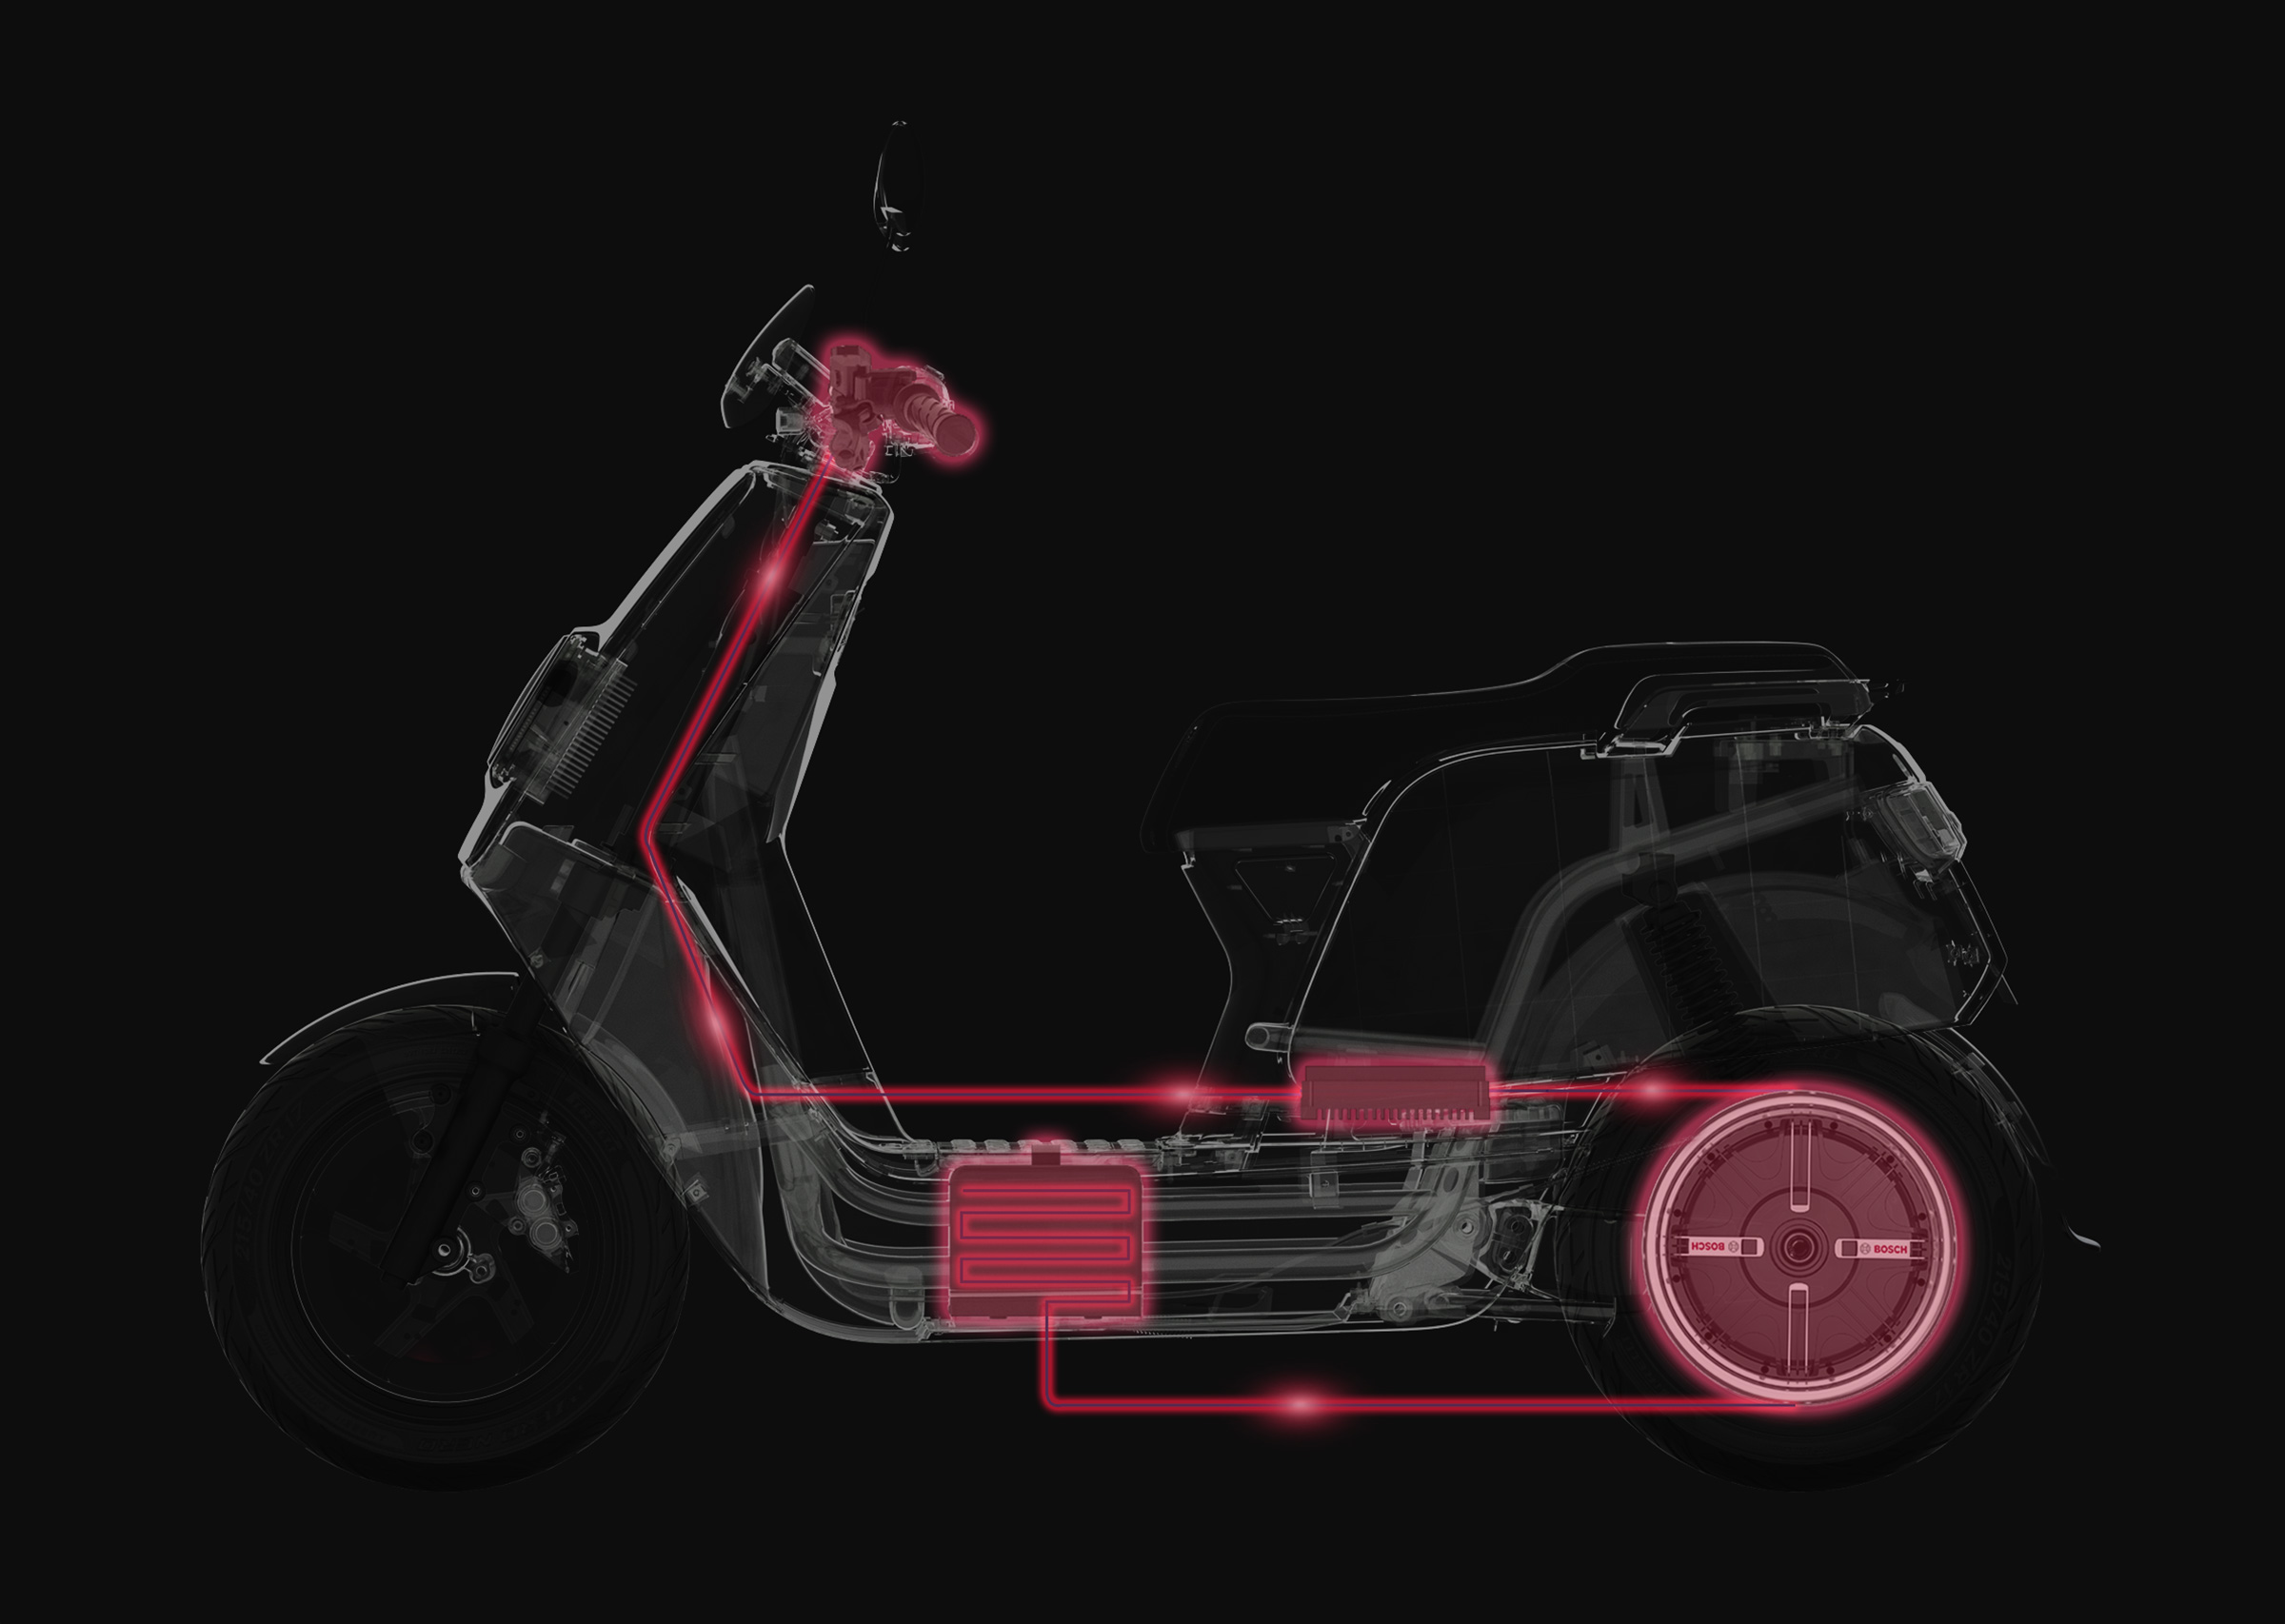 NIU N-Series - The Future of Electric Scooters